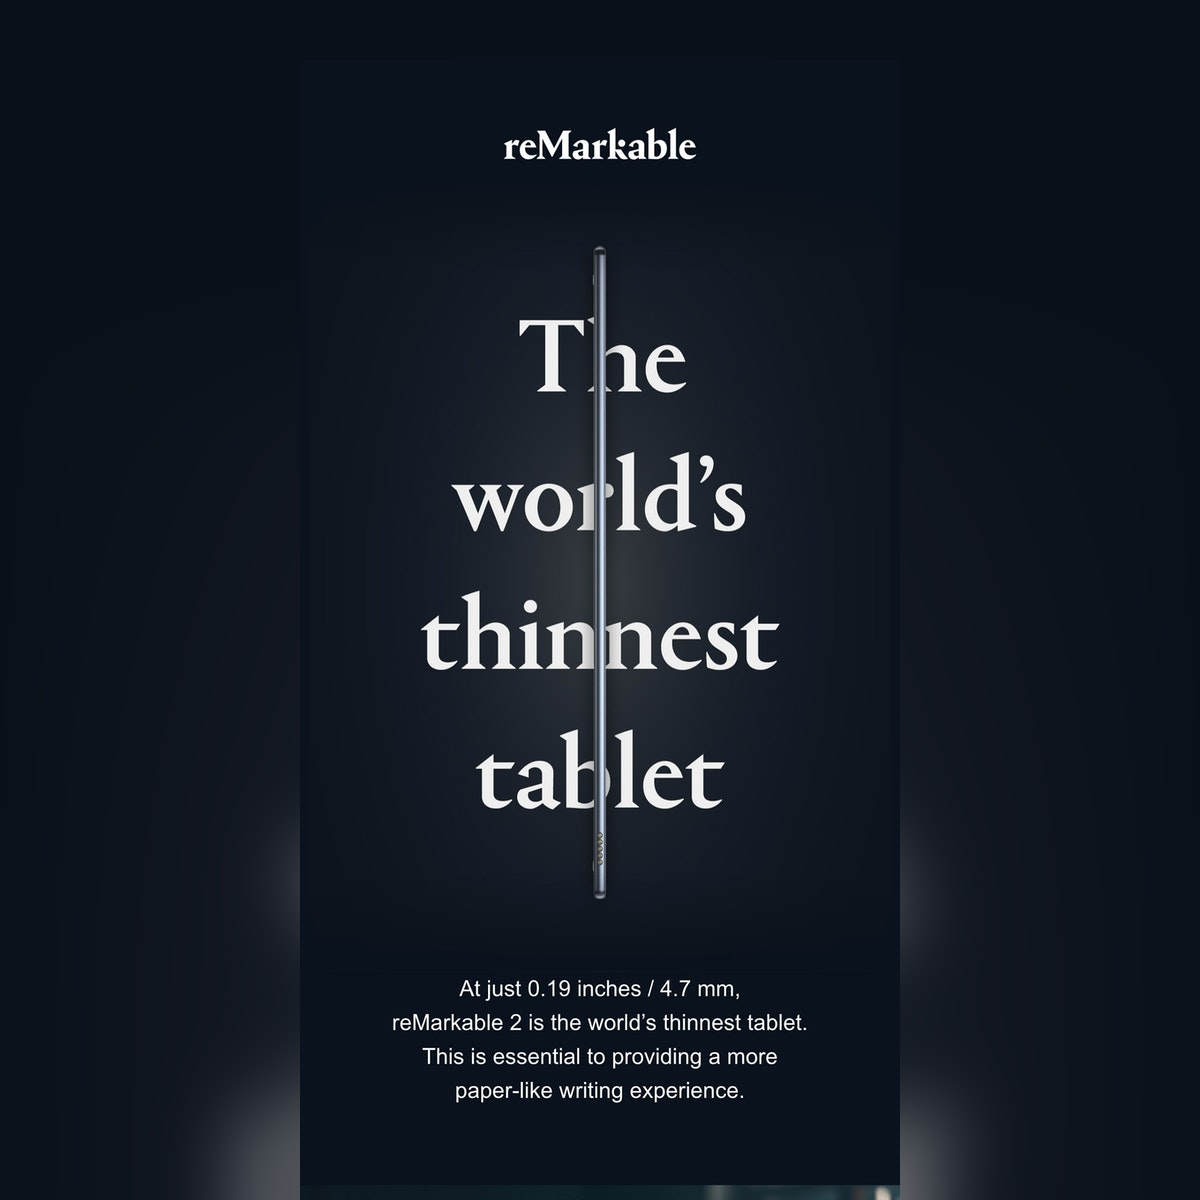 The world's thinnest tablet